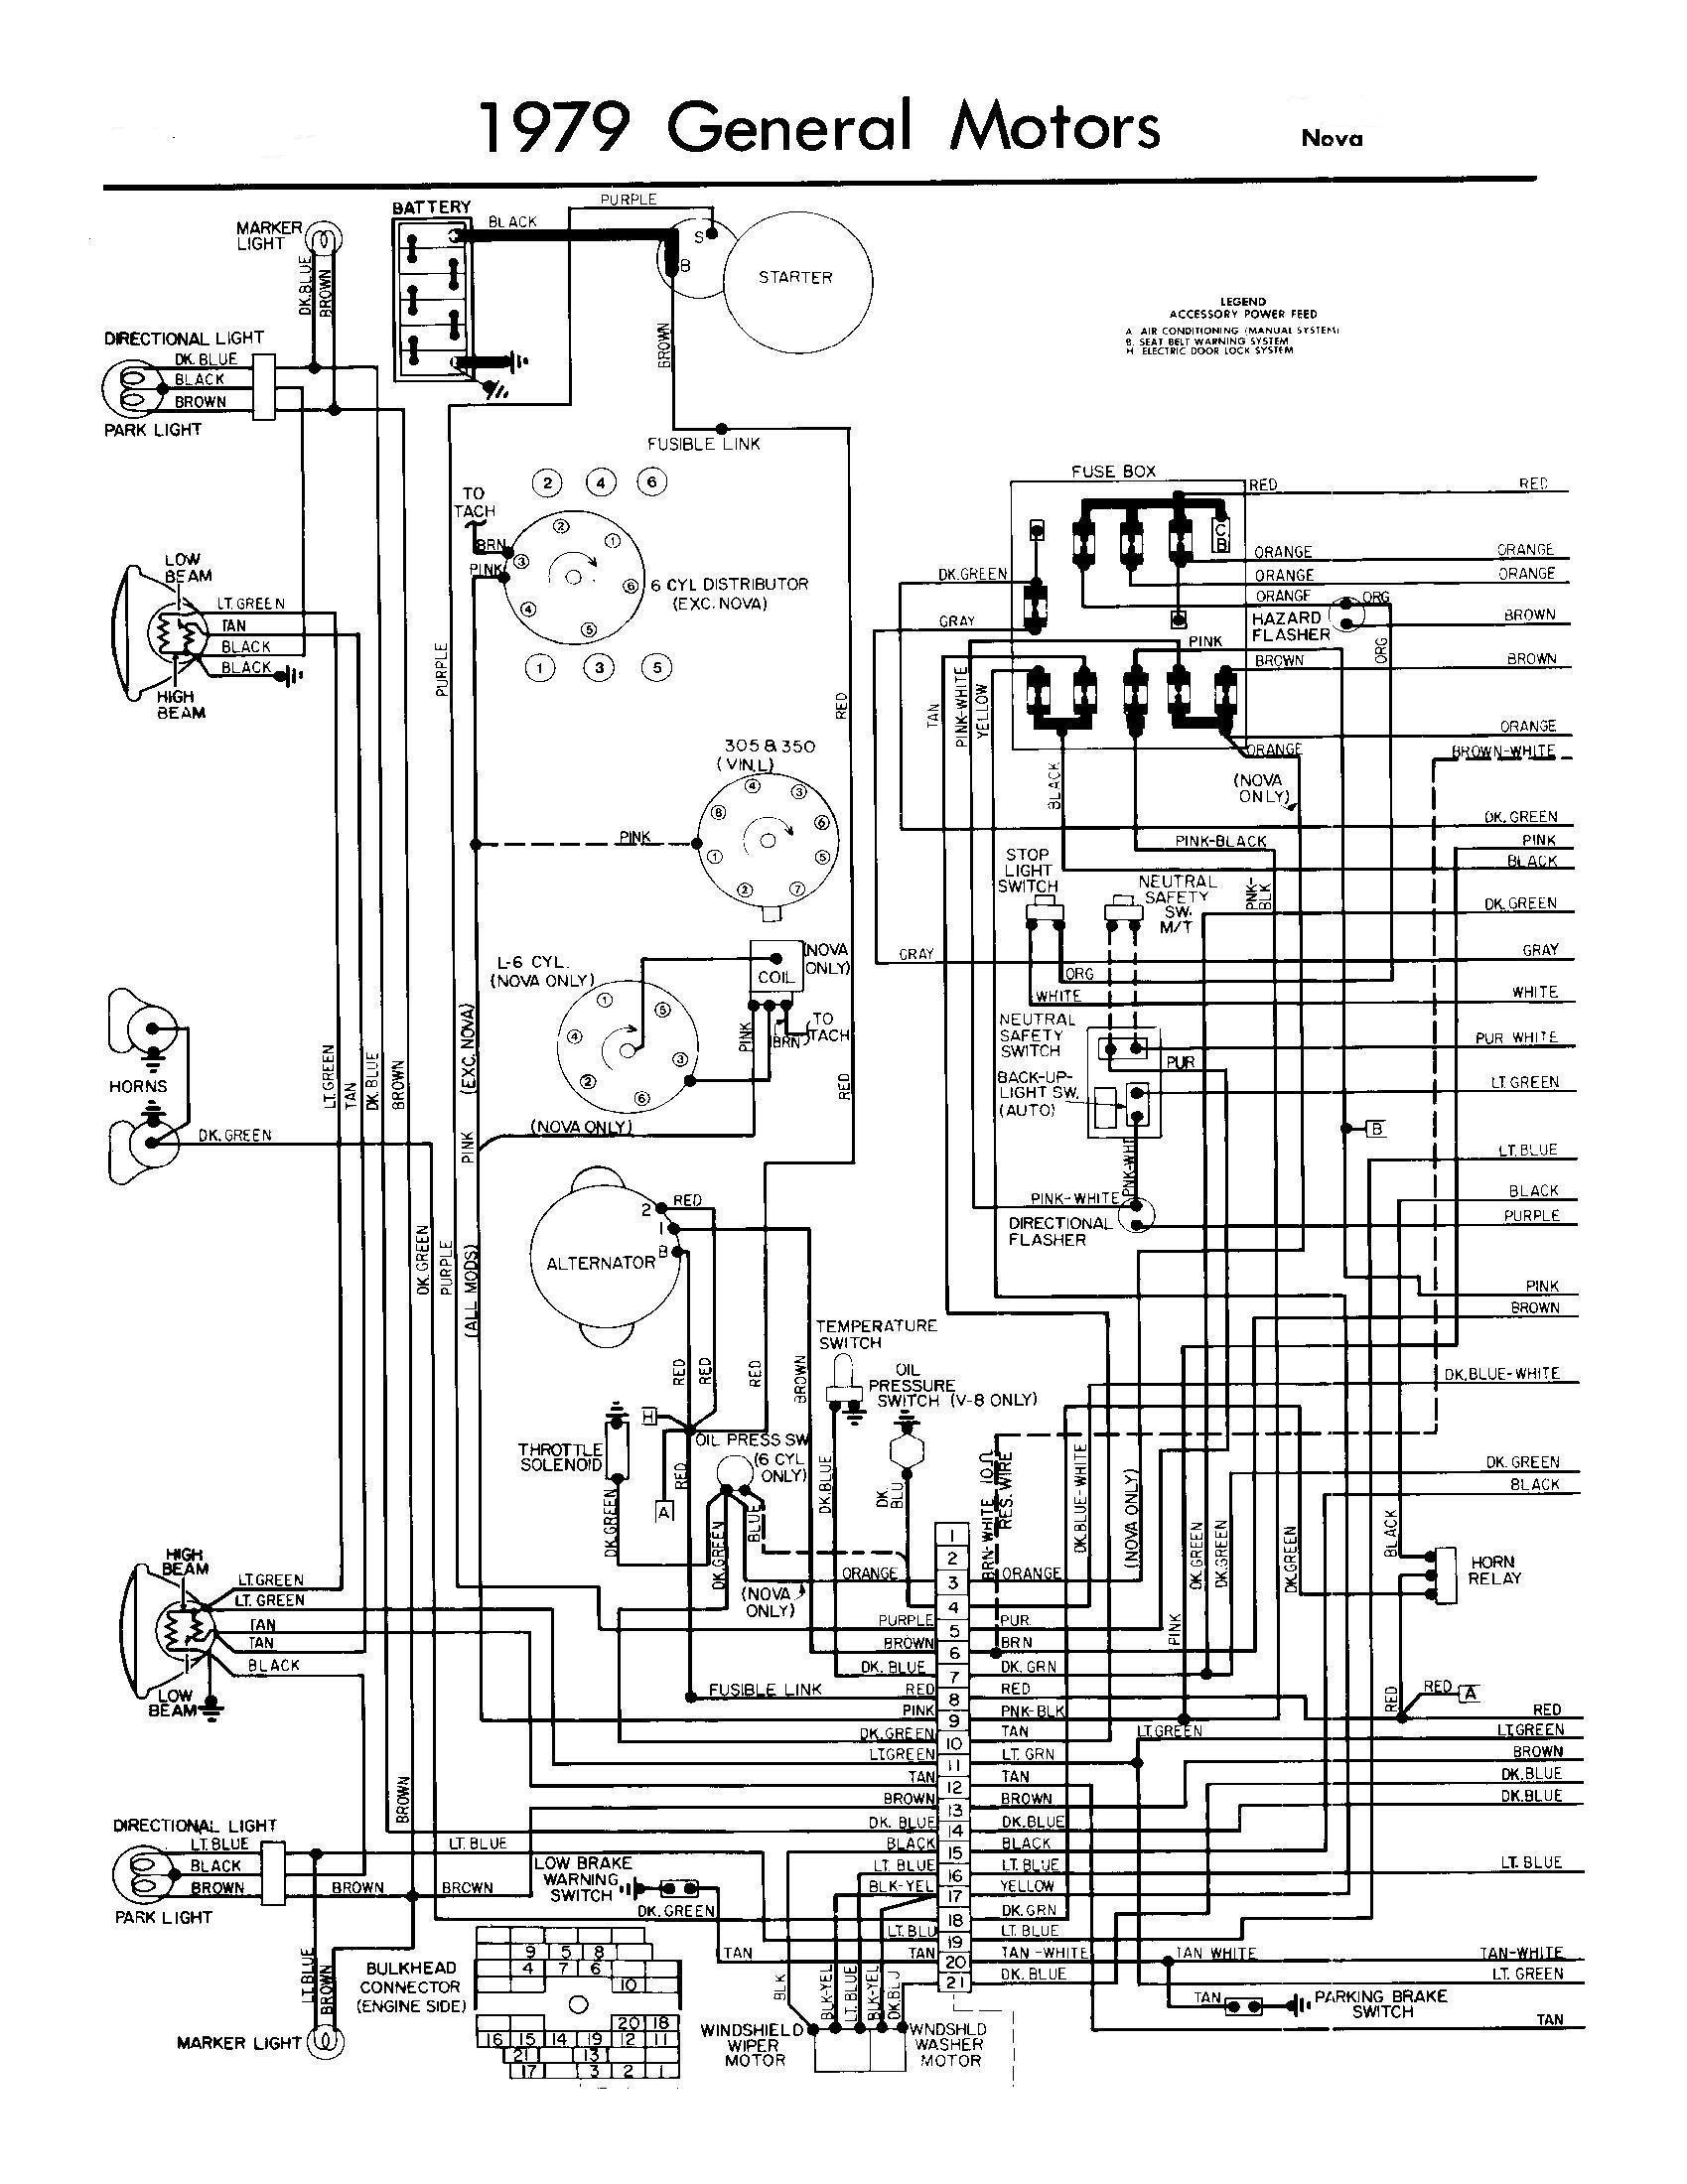 1981 camaro alternator wiring diagram